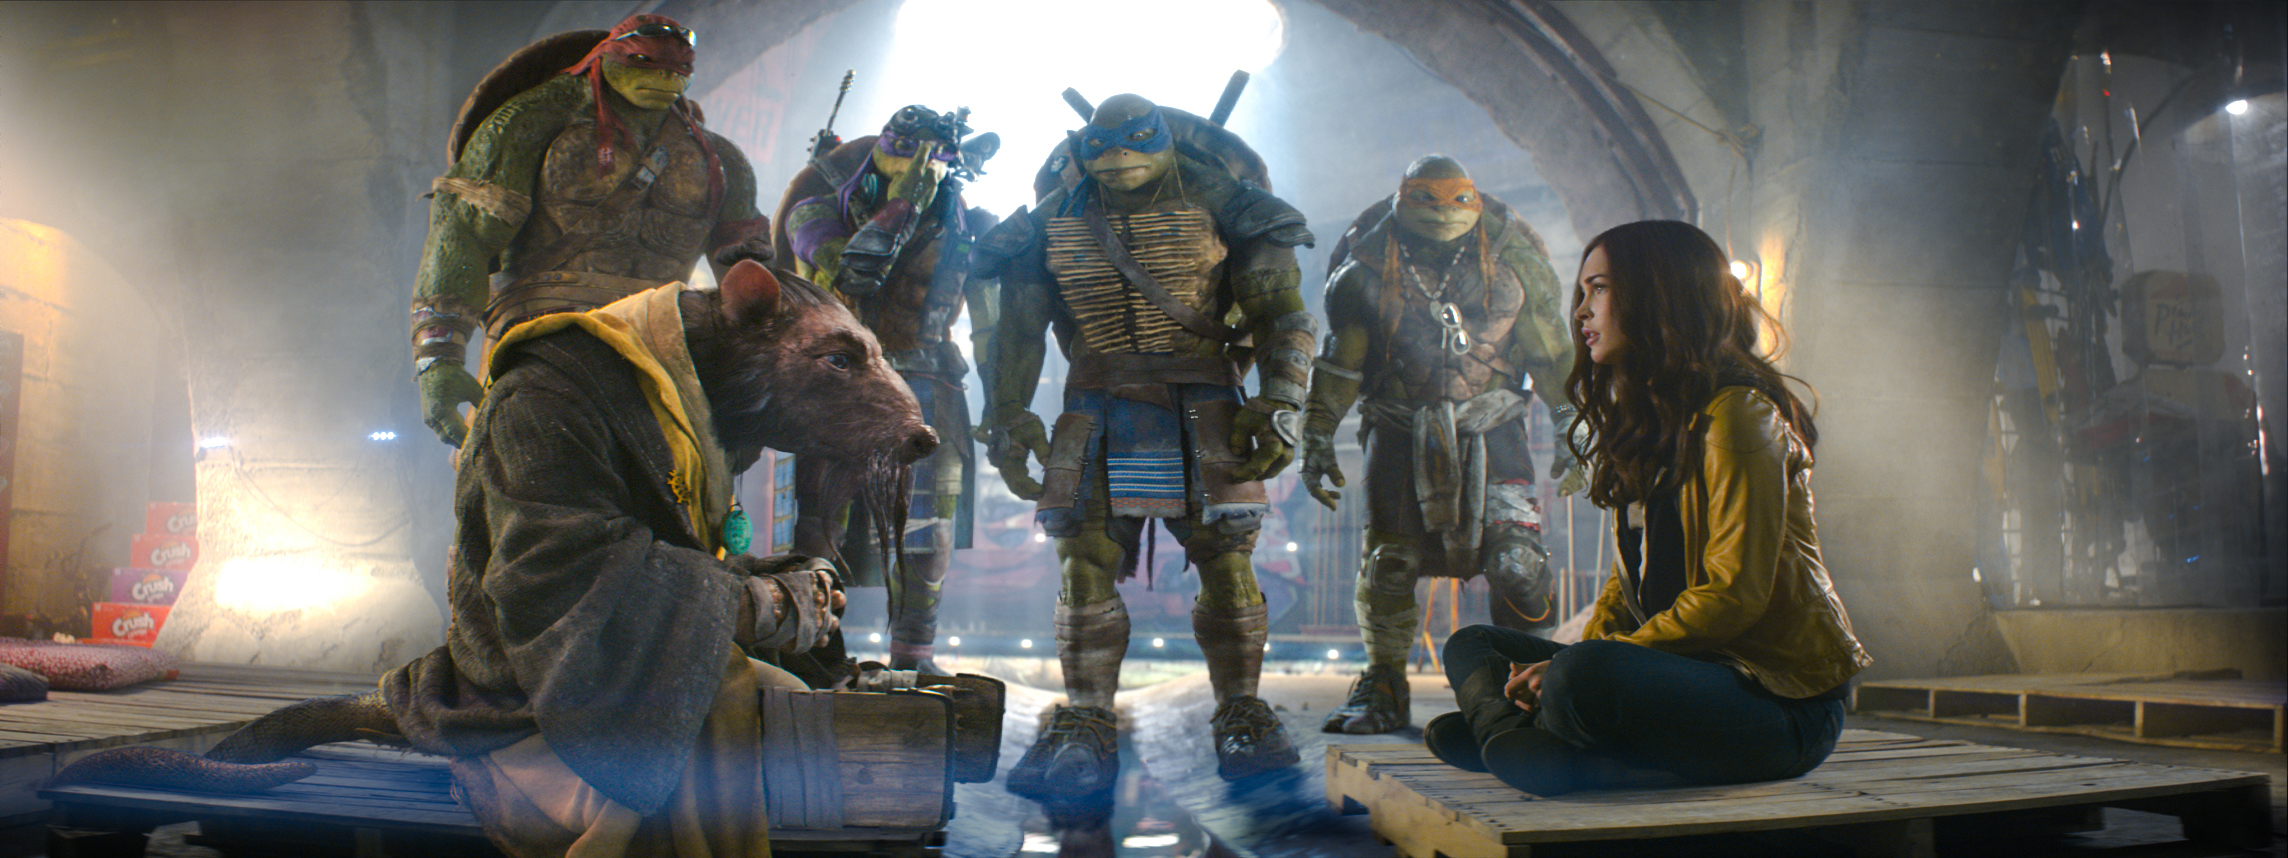 World Premiere of Teenage Mutant Ninja Turtles May 30th on EPIX